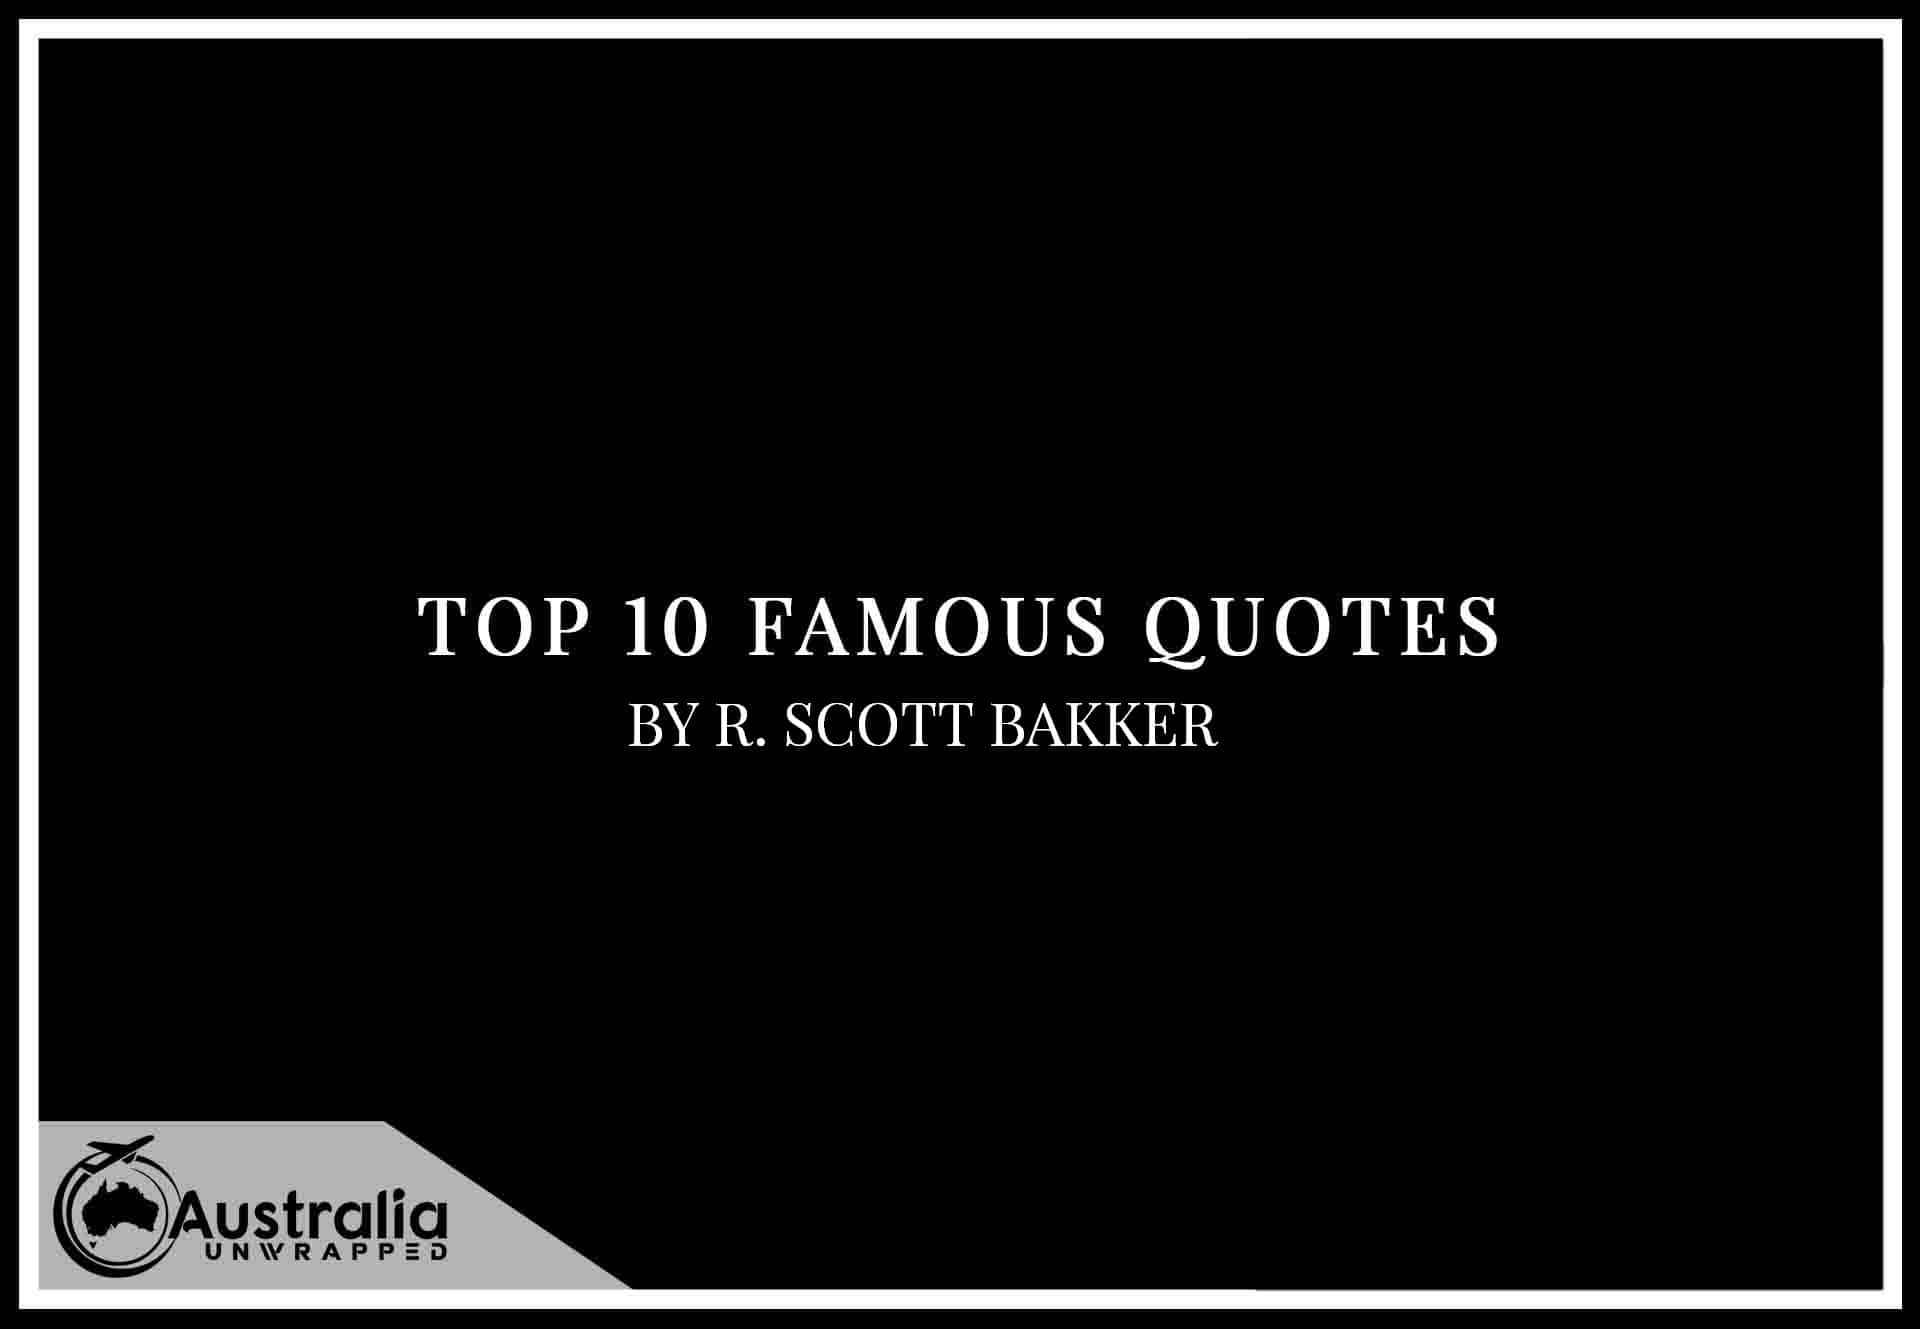 Top 10 Famous Quotes by Author R. Scott Bakker